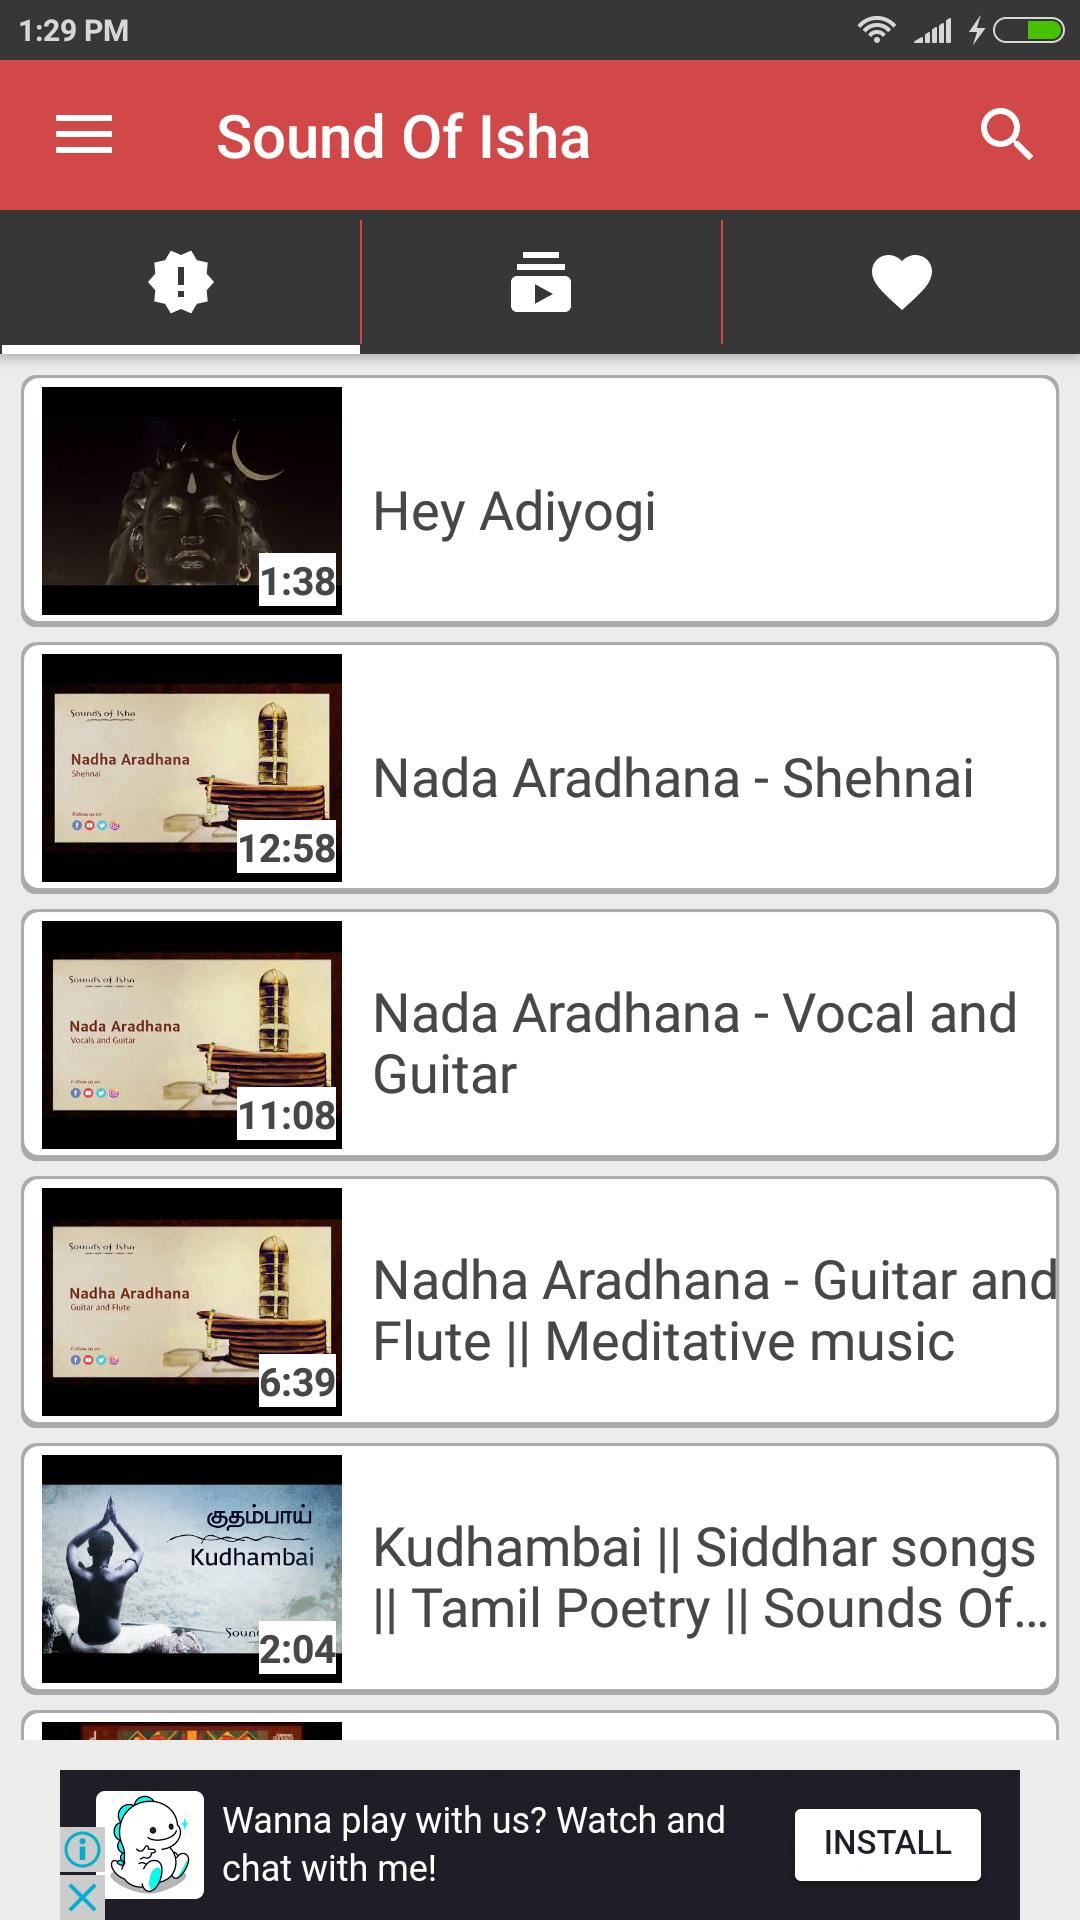 Sound Of ISha for Android - APK Download